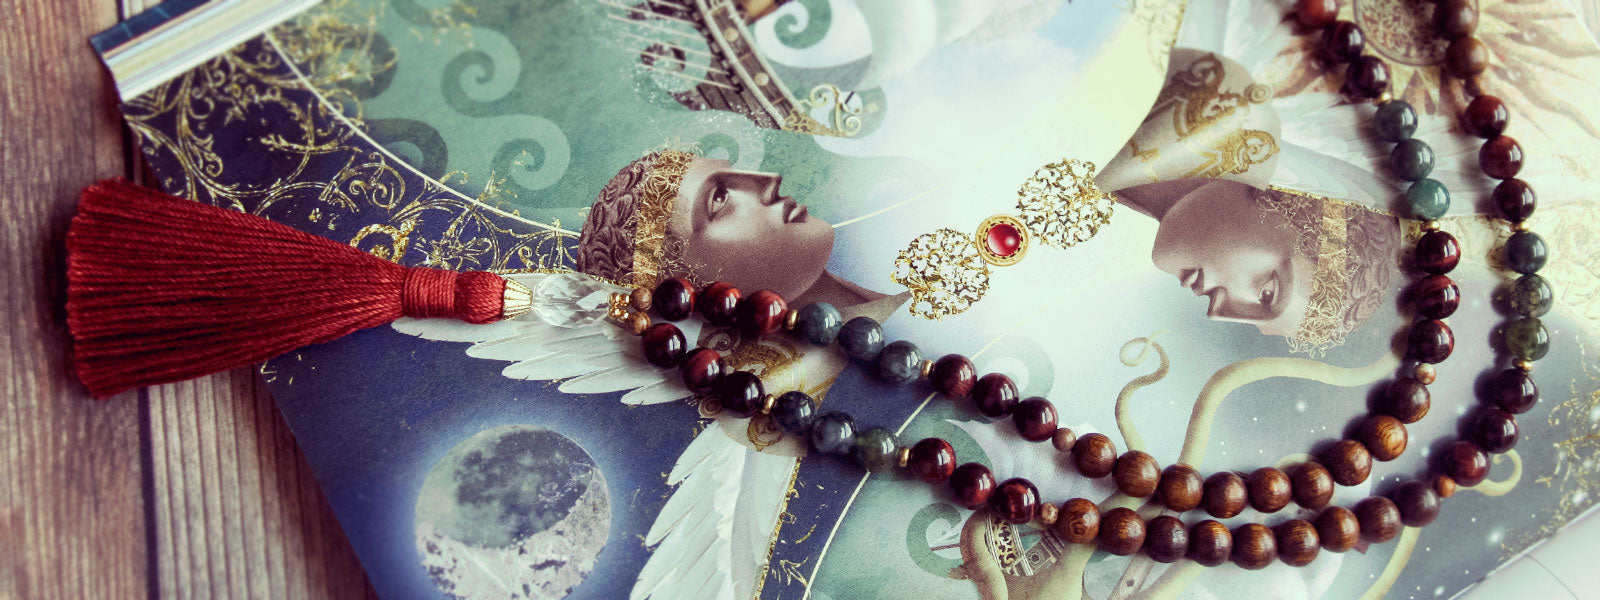 Mala Beads Necklace of Wood and Gemstone by Golden Lotus Mala